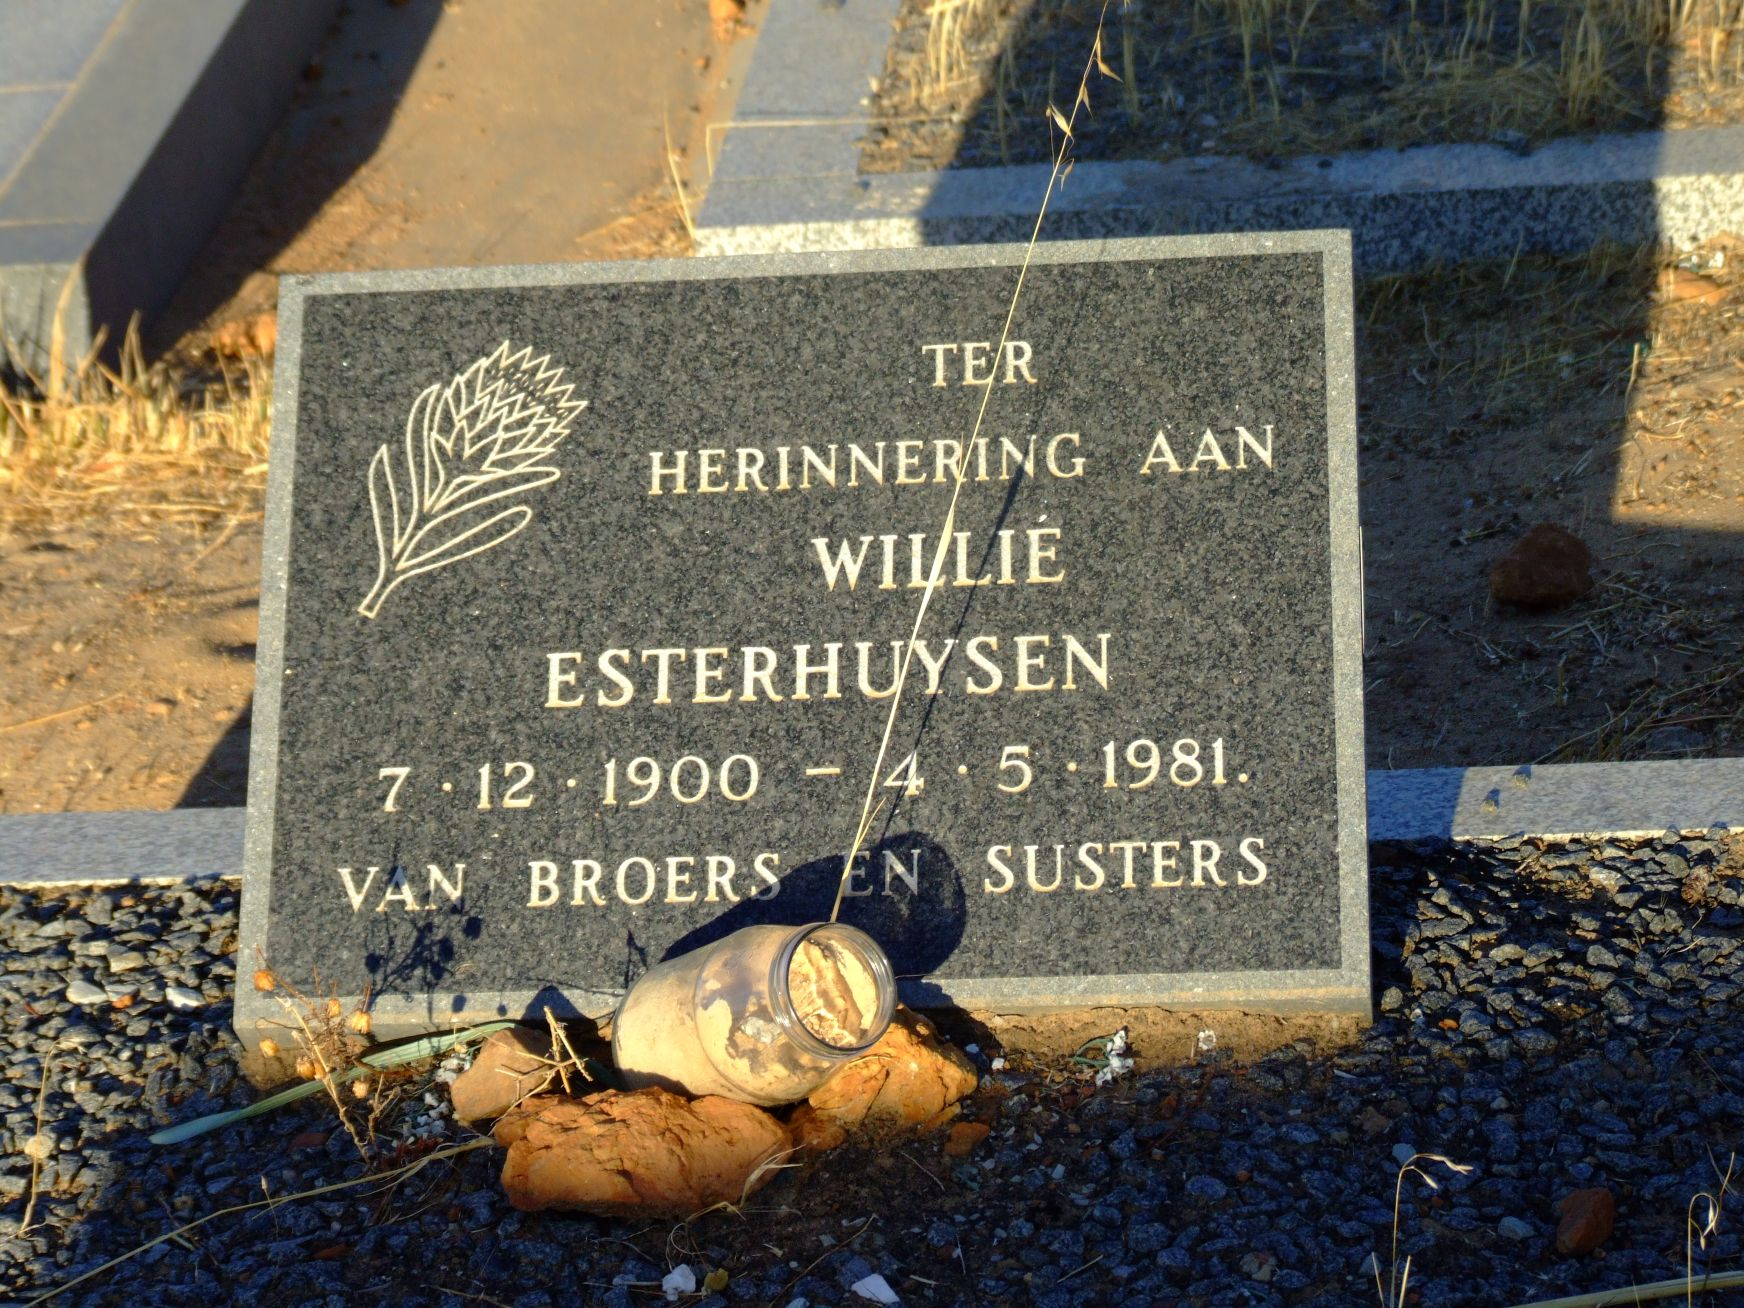 Esterhuysen, Willie